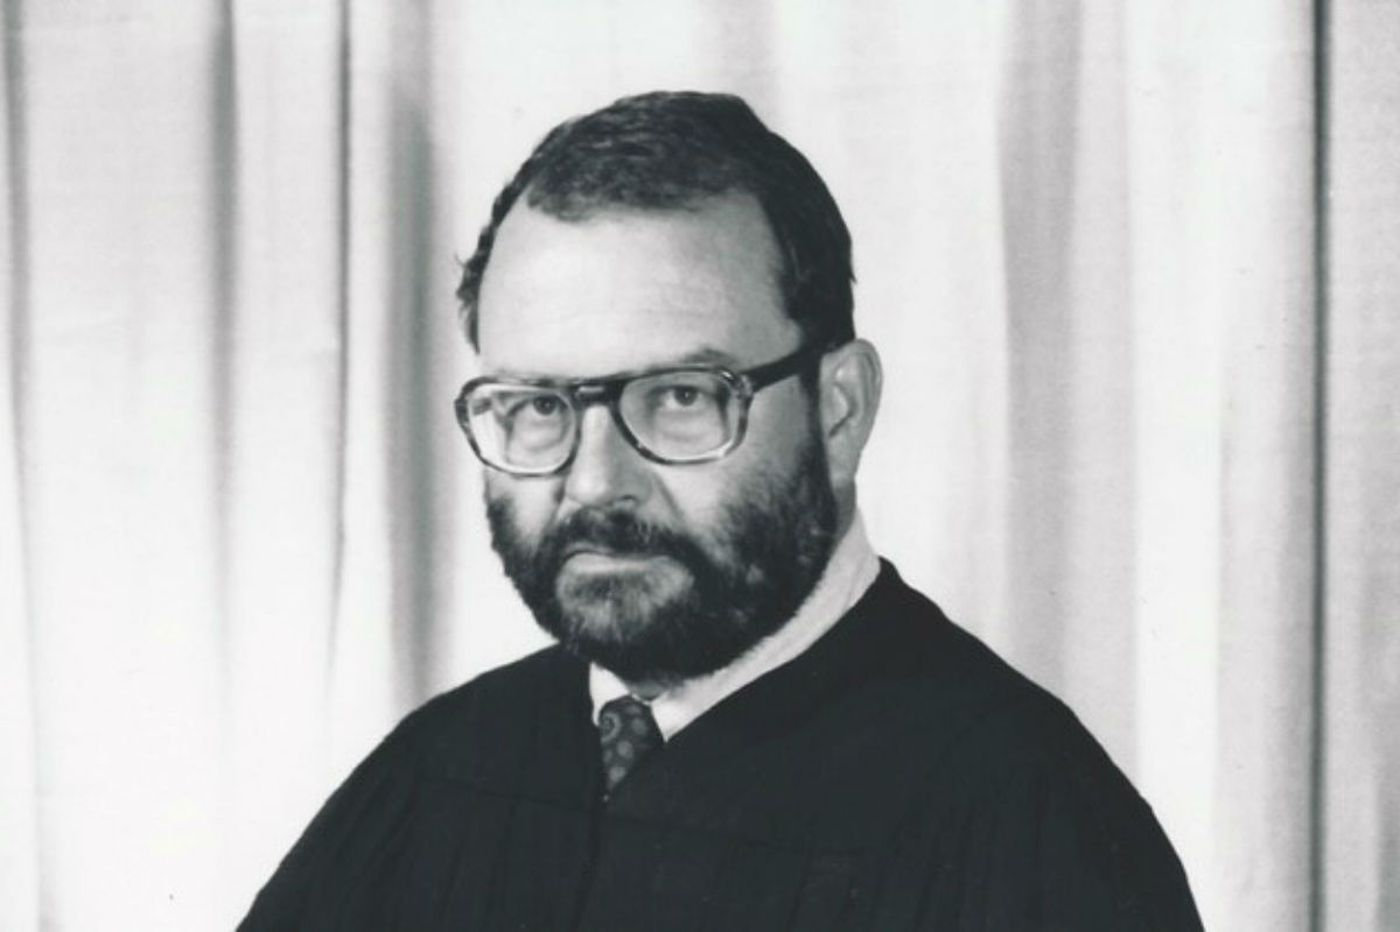 Michael Patrick King, 82, New Jersey appellate judge whose writings shaped landmark cases